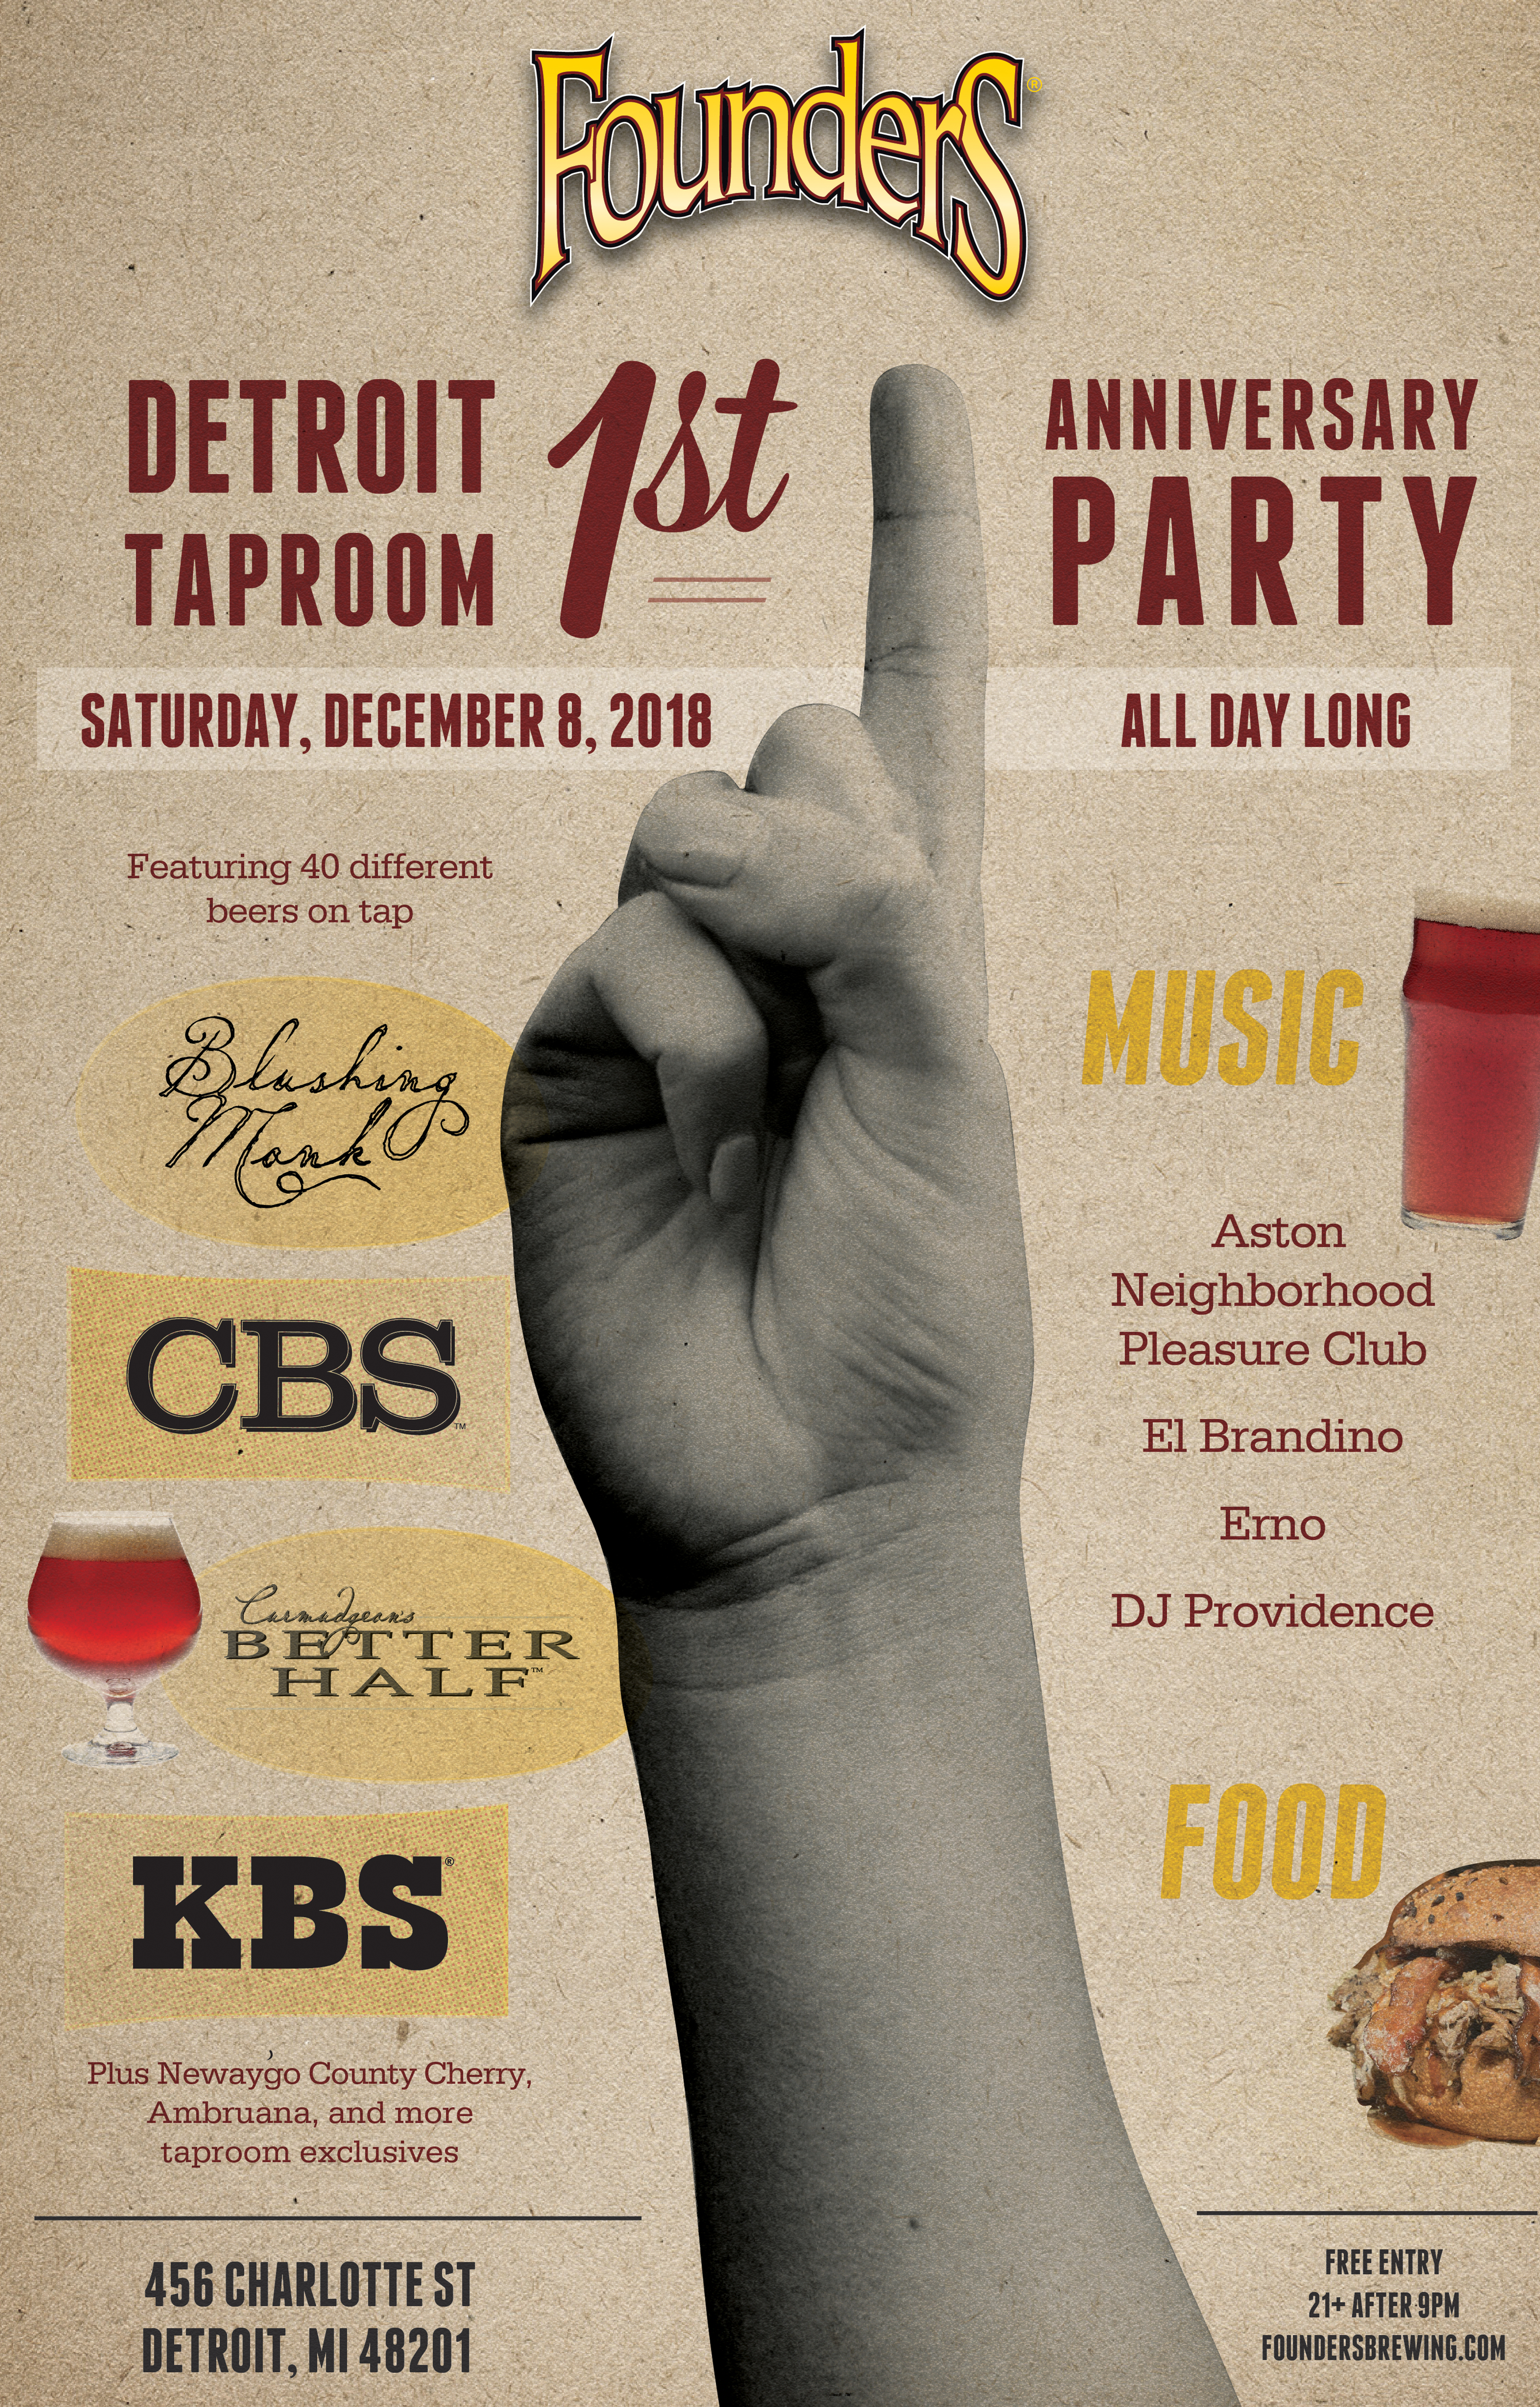 Detroit Taproom 1st Anniversary Party event poster